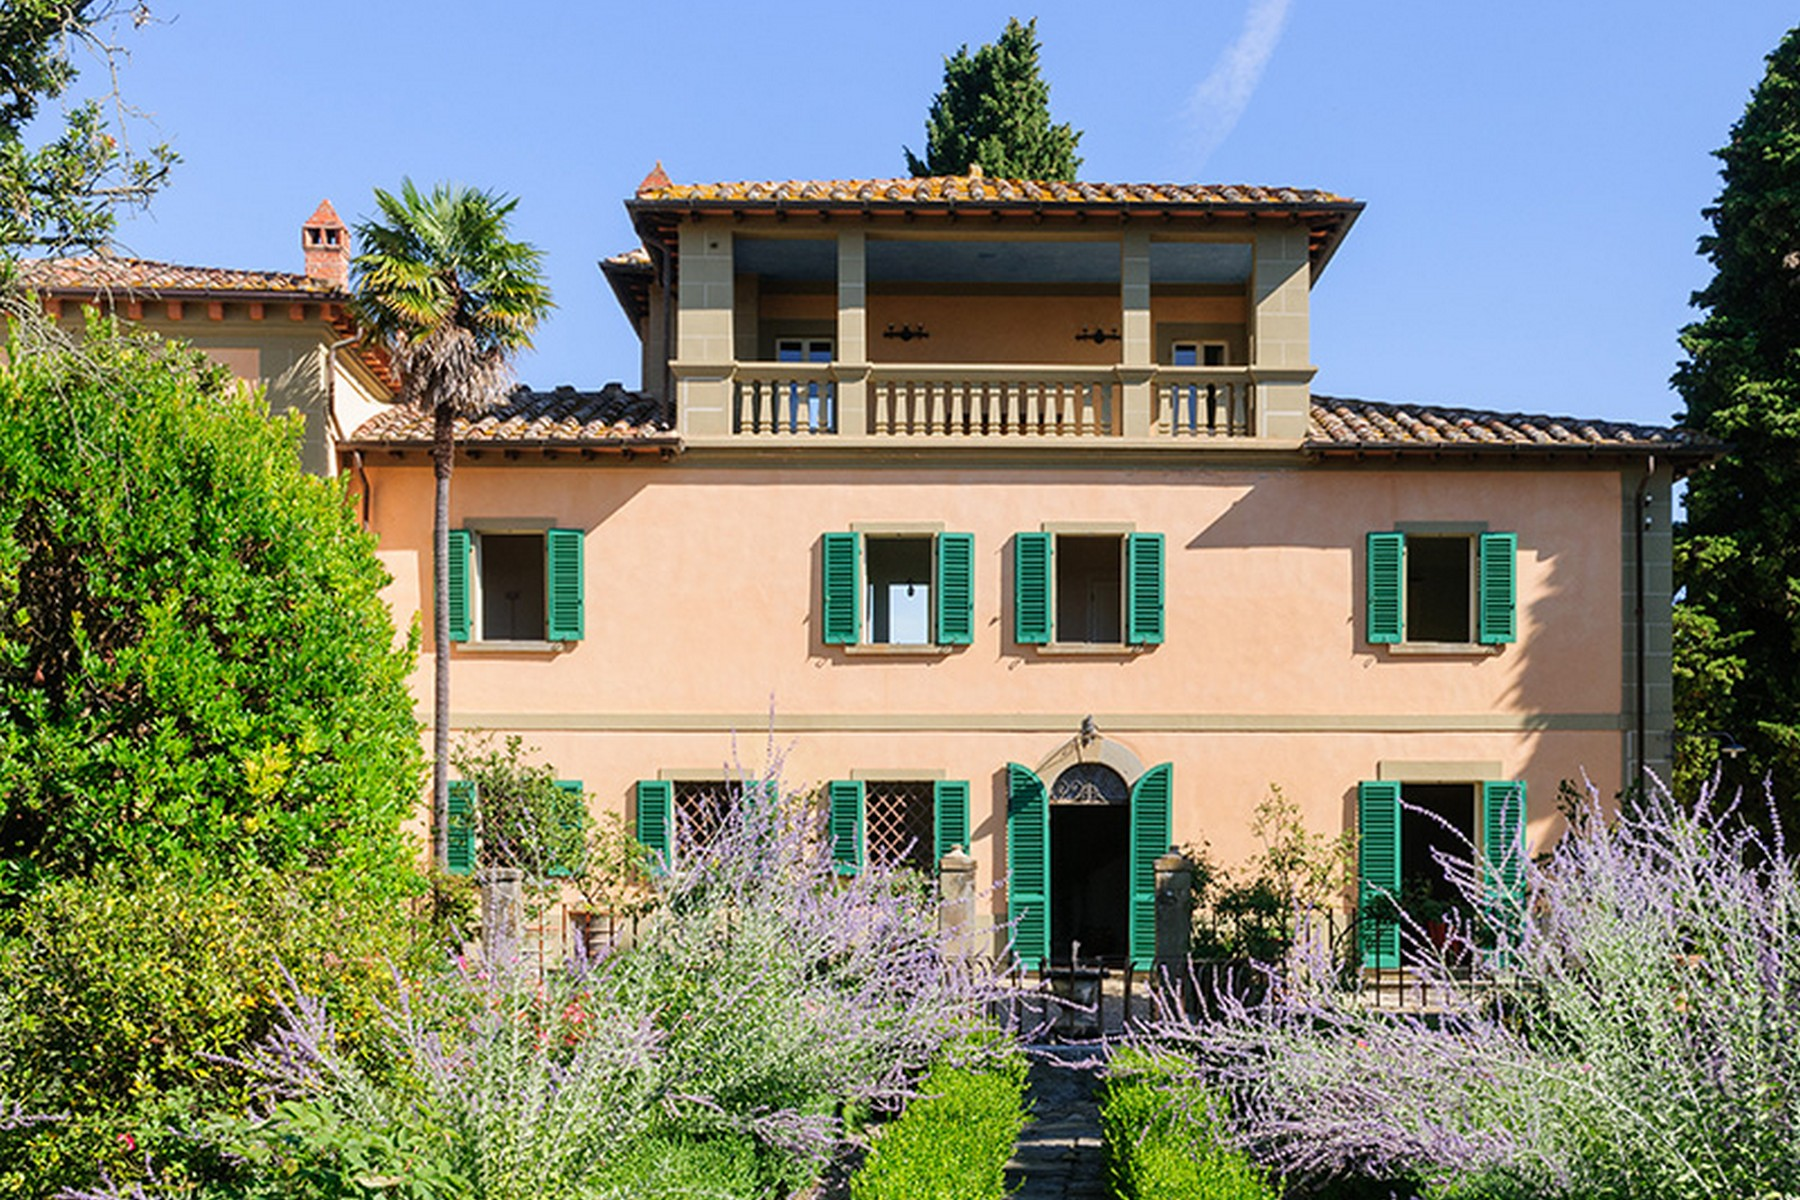 Charming winery in the heart of chianti